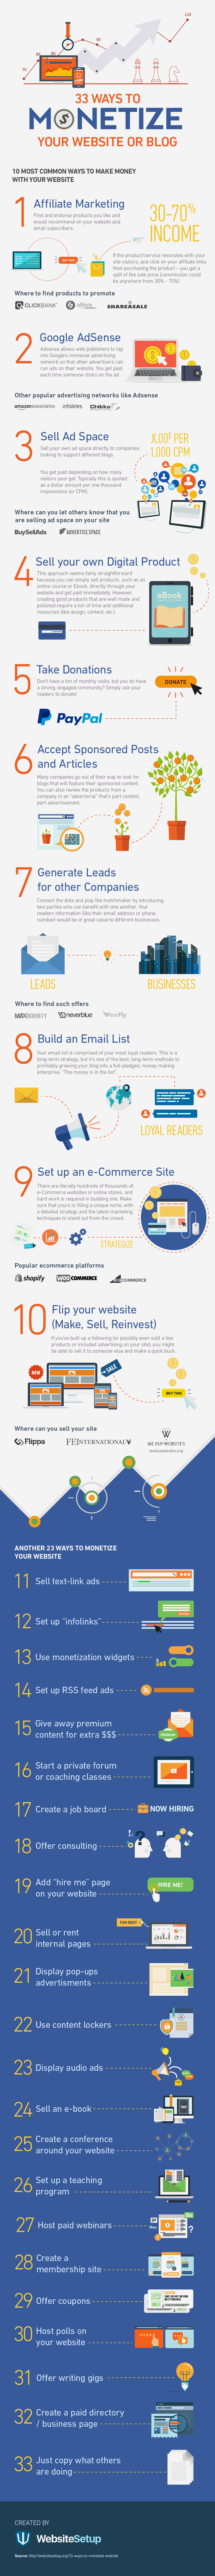 33 Ways to Actually Make Money from a Website or Blog [Infographic] | Social Media Today